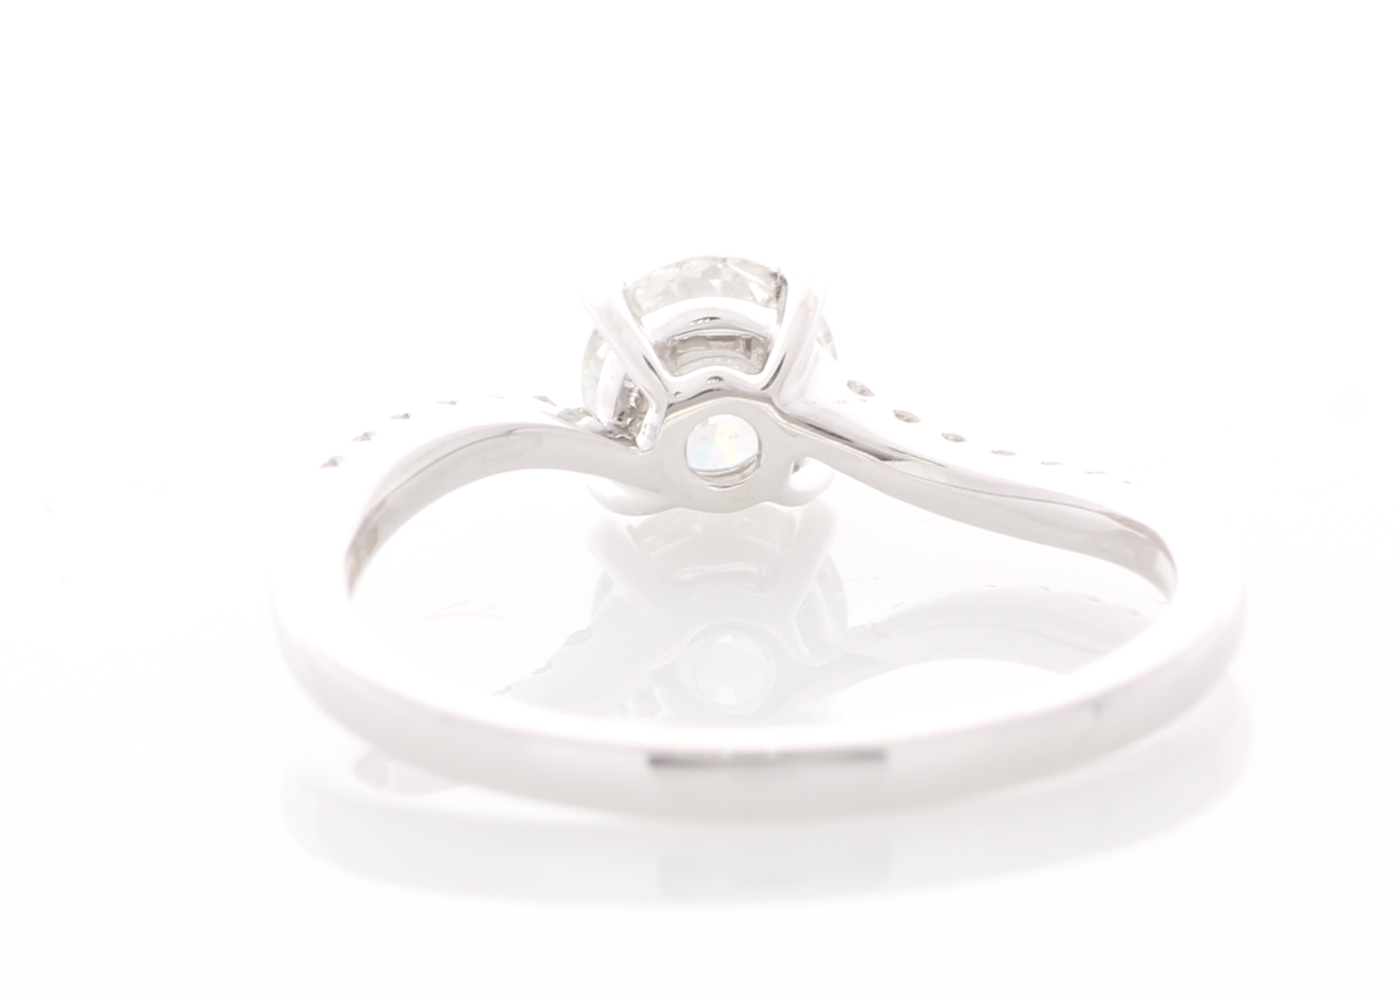 18ct White Gold Prong Set With Stone Set Shoulders Diamond Ring 0.73 Carats - Image 3 of 6